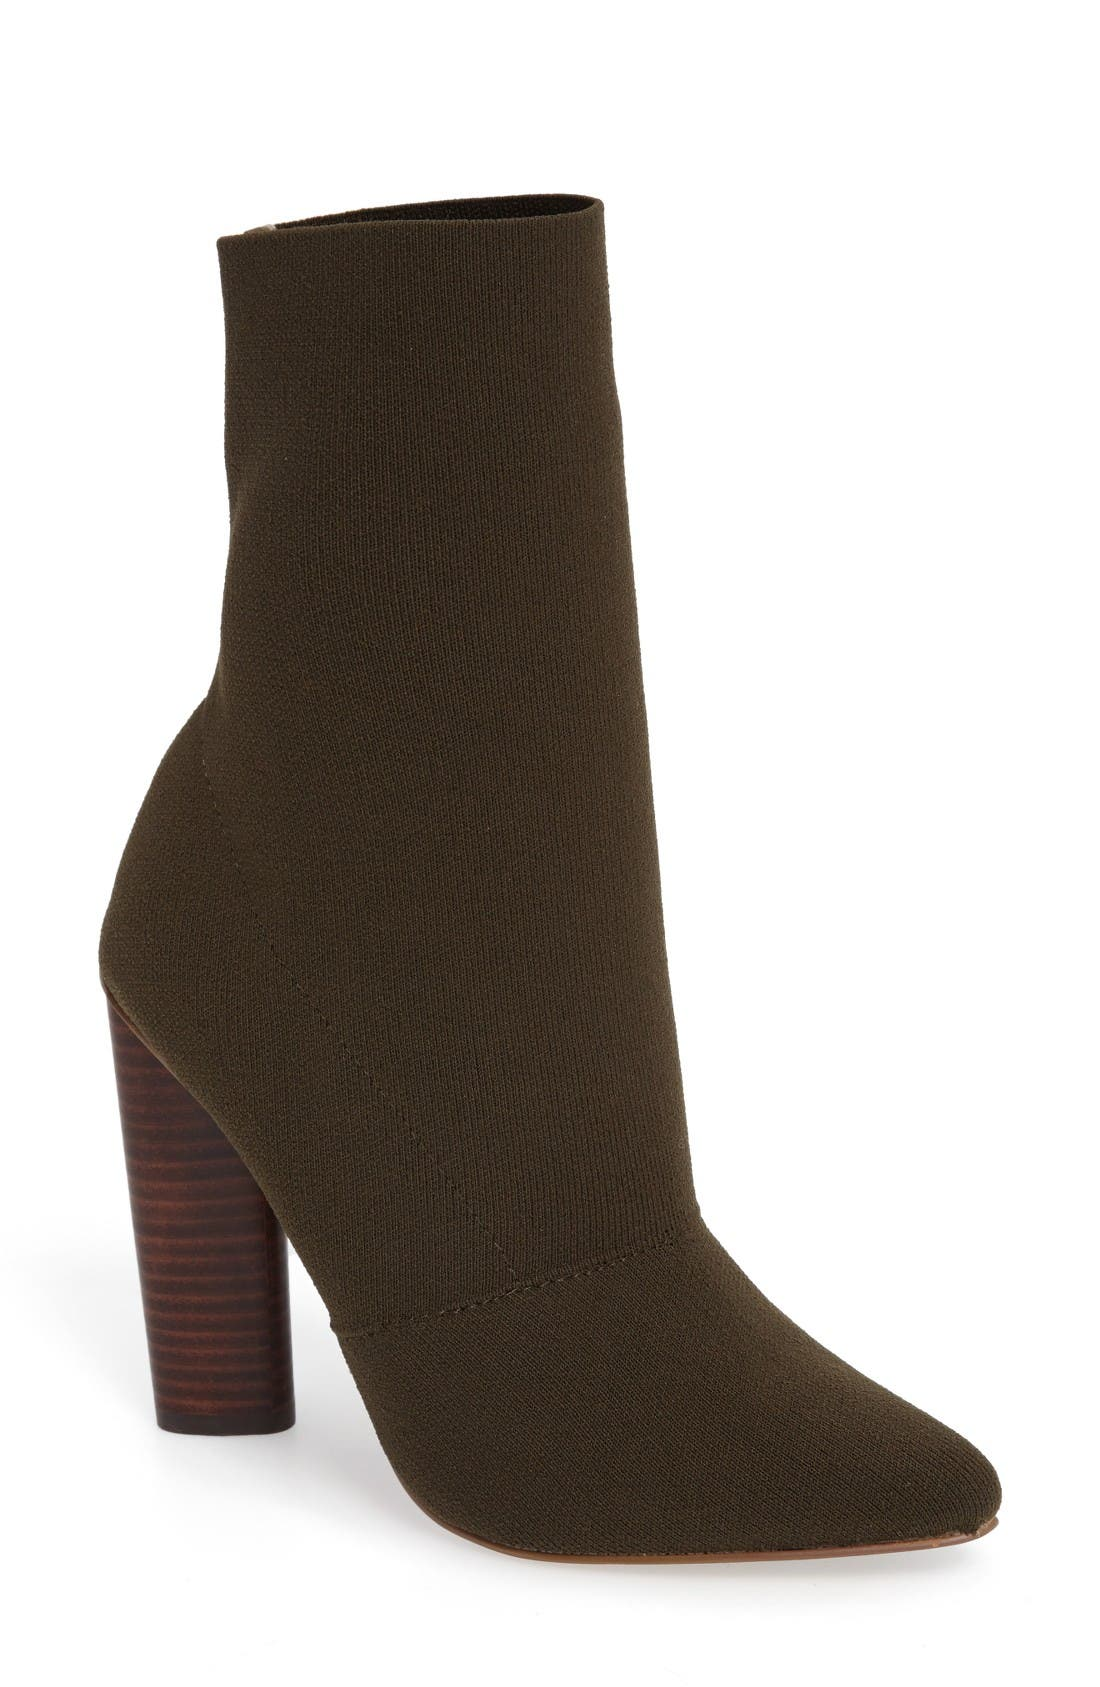 Alternate Image 1 Selected - Steve Madden Capitol Stretch Bootie (Women)